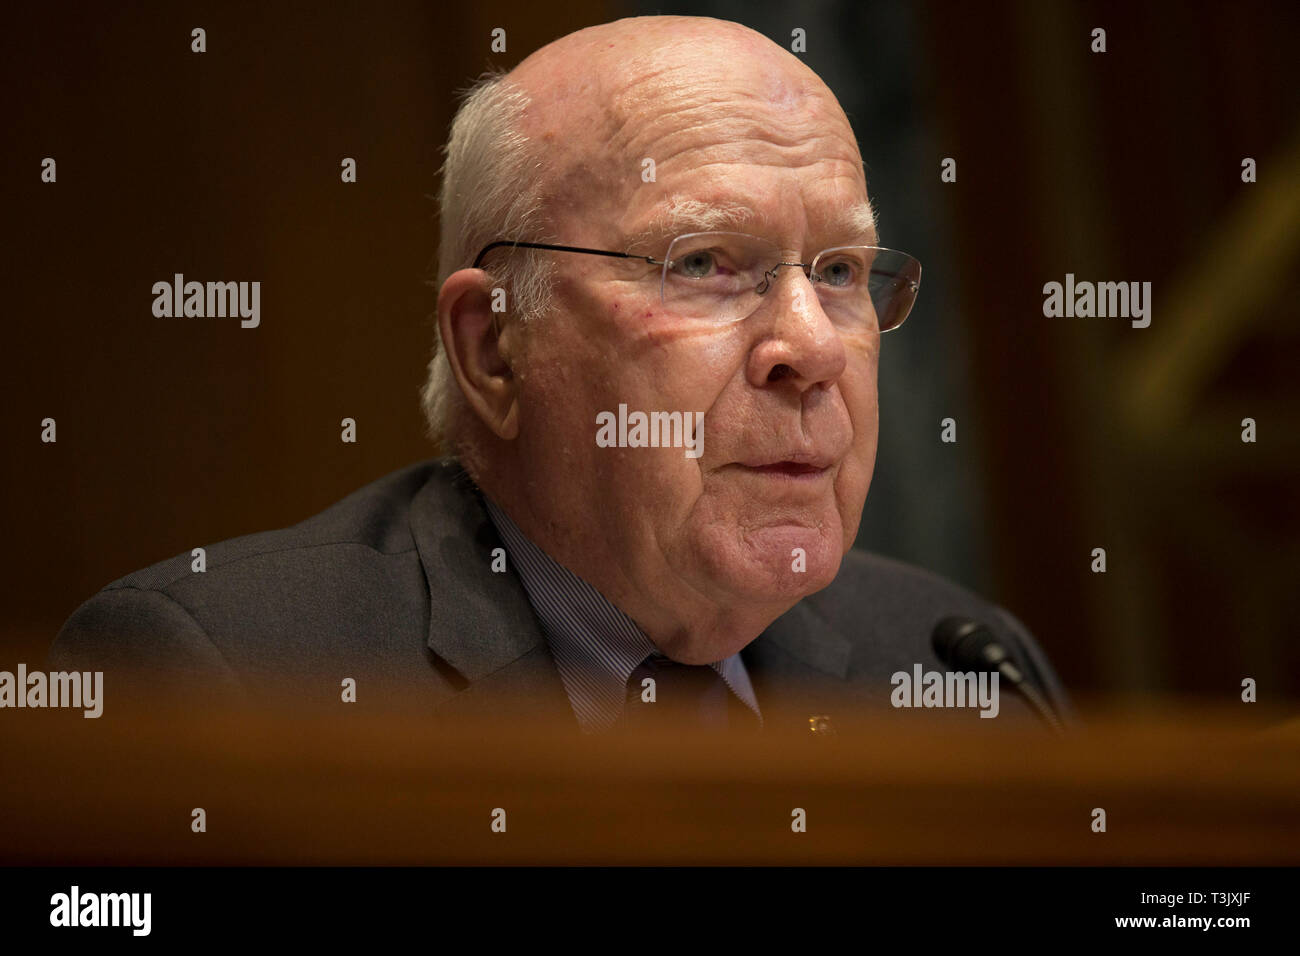 Washington DC, USA. 10th Apr, 2019.  United States Senator Patrick Leahy (Democrat of Vermont) questions United States Attorney General William P. Barr during the US Senate Committee on Appropriations Appropriations Subcommittee on Commerce, Justice, Science, and Related Agencies on Capitol Hill in Washington, DC on April 10, 2019. Credit: dpa picture alliance/Alamy Live News Stock Photo